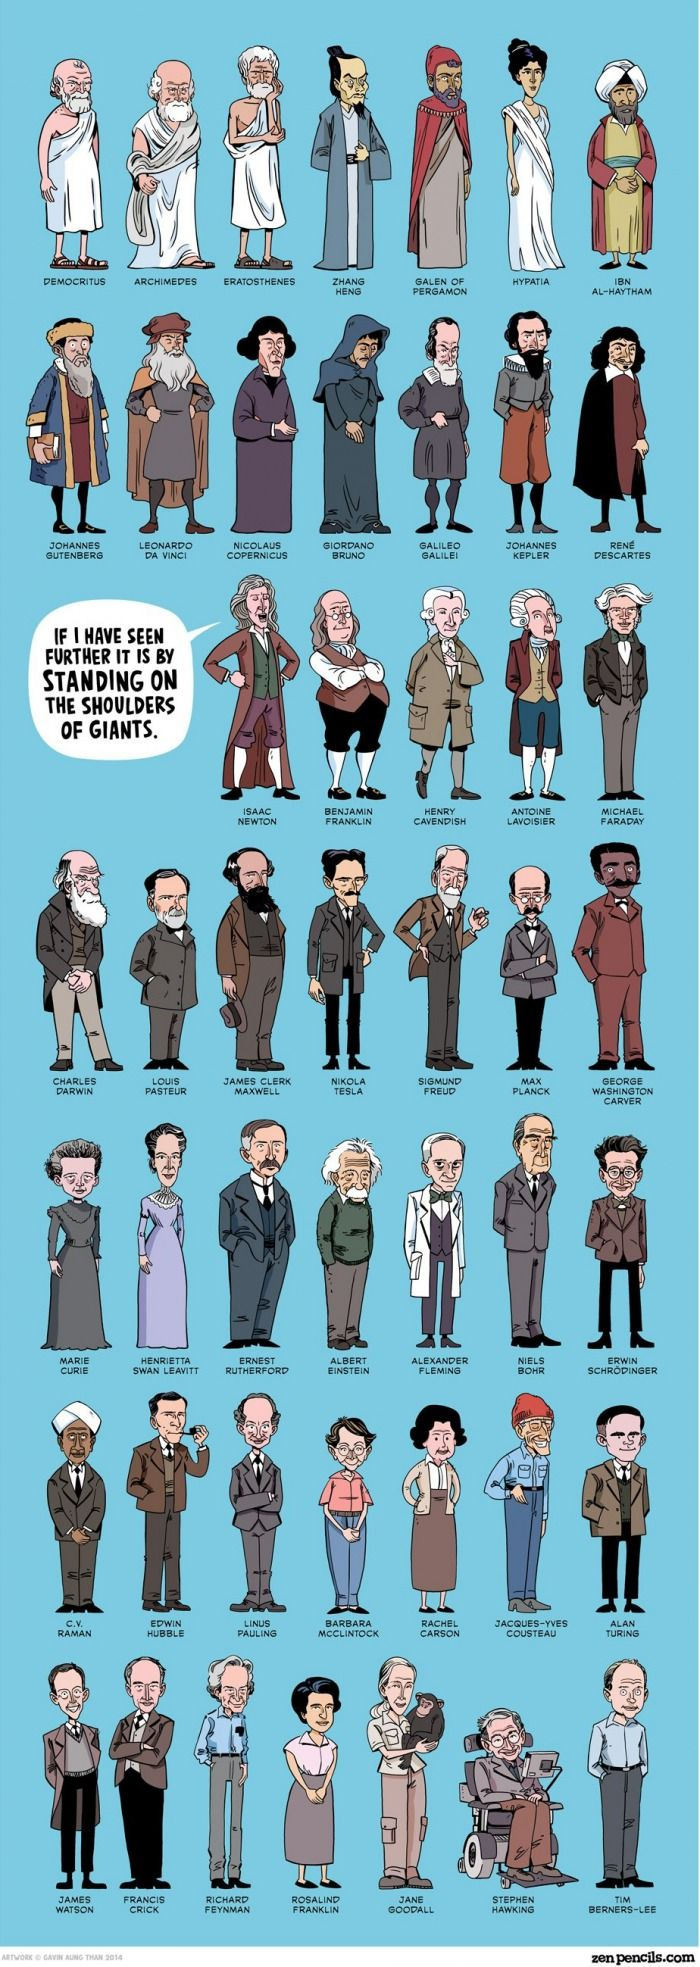 This awesome graphic from Zen Pencil shows the greatest scientists throughout history.